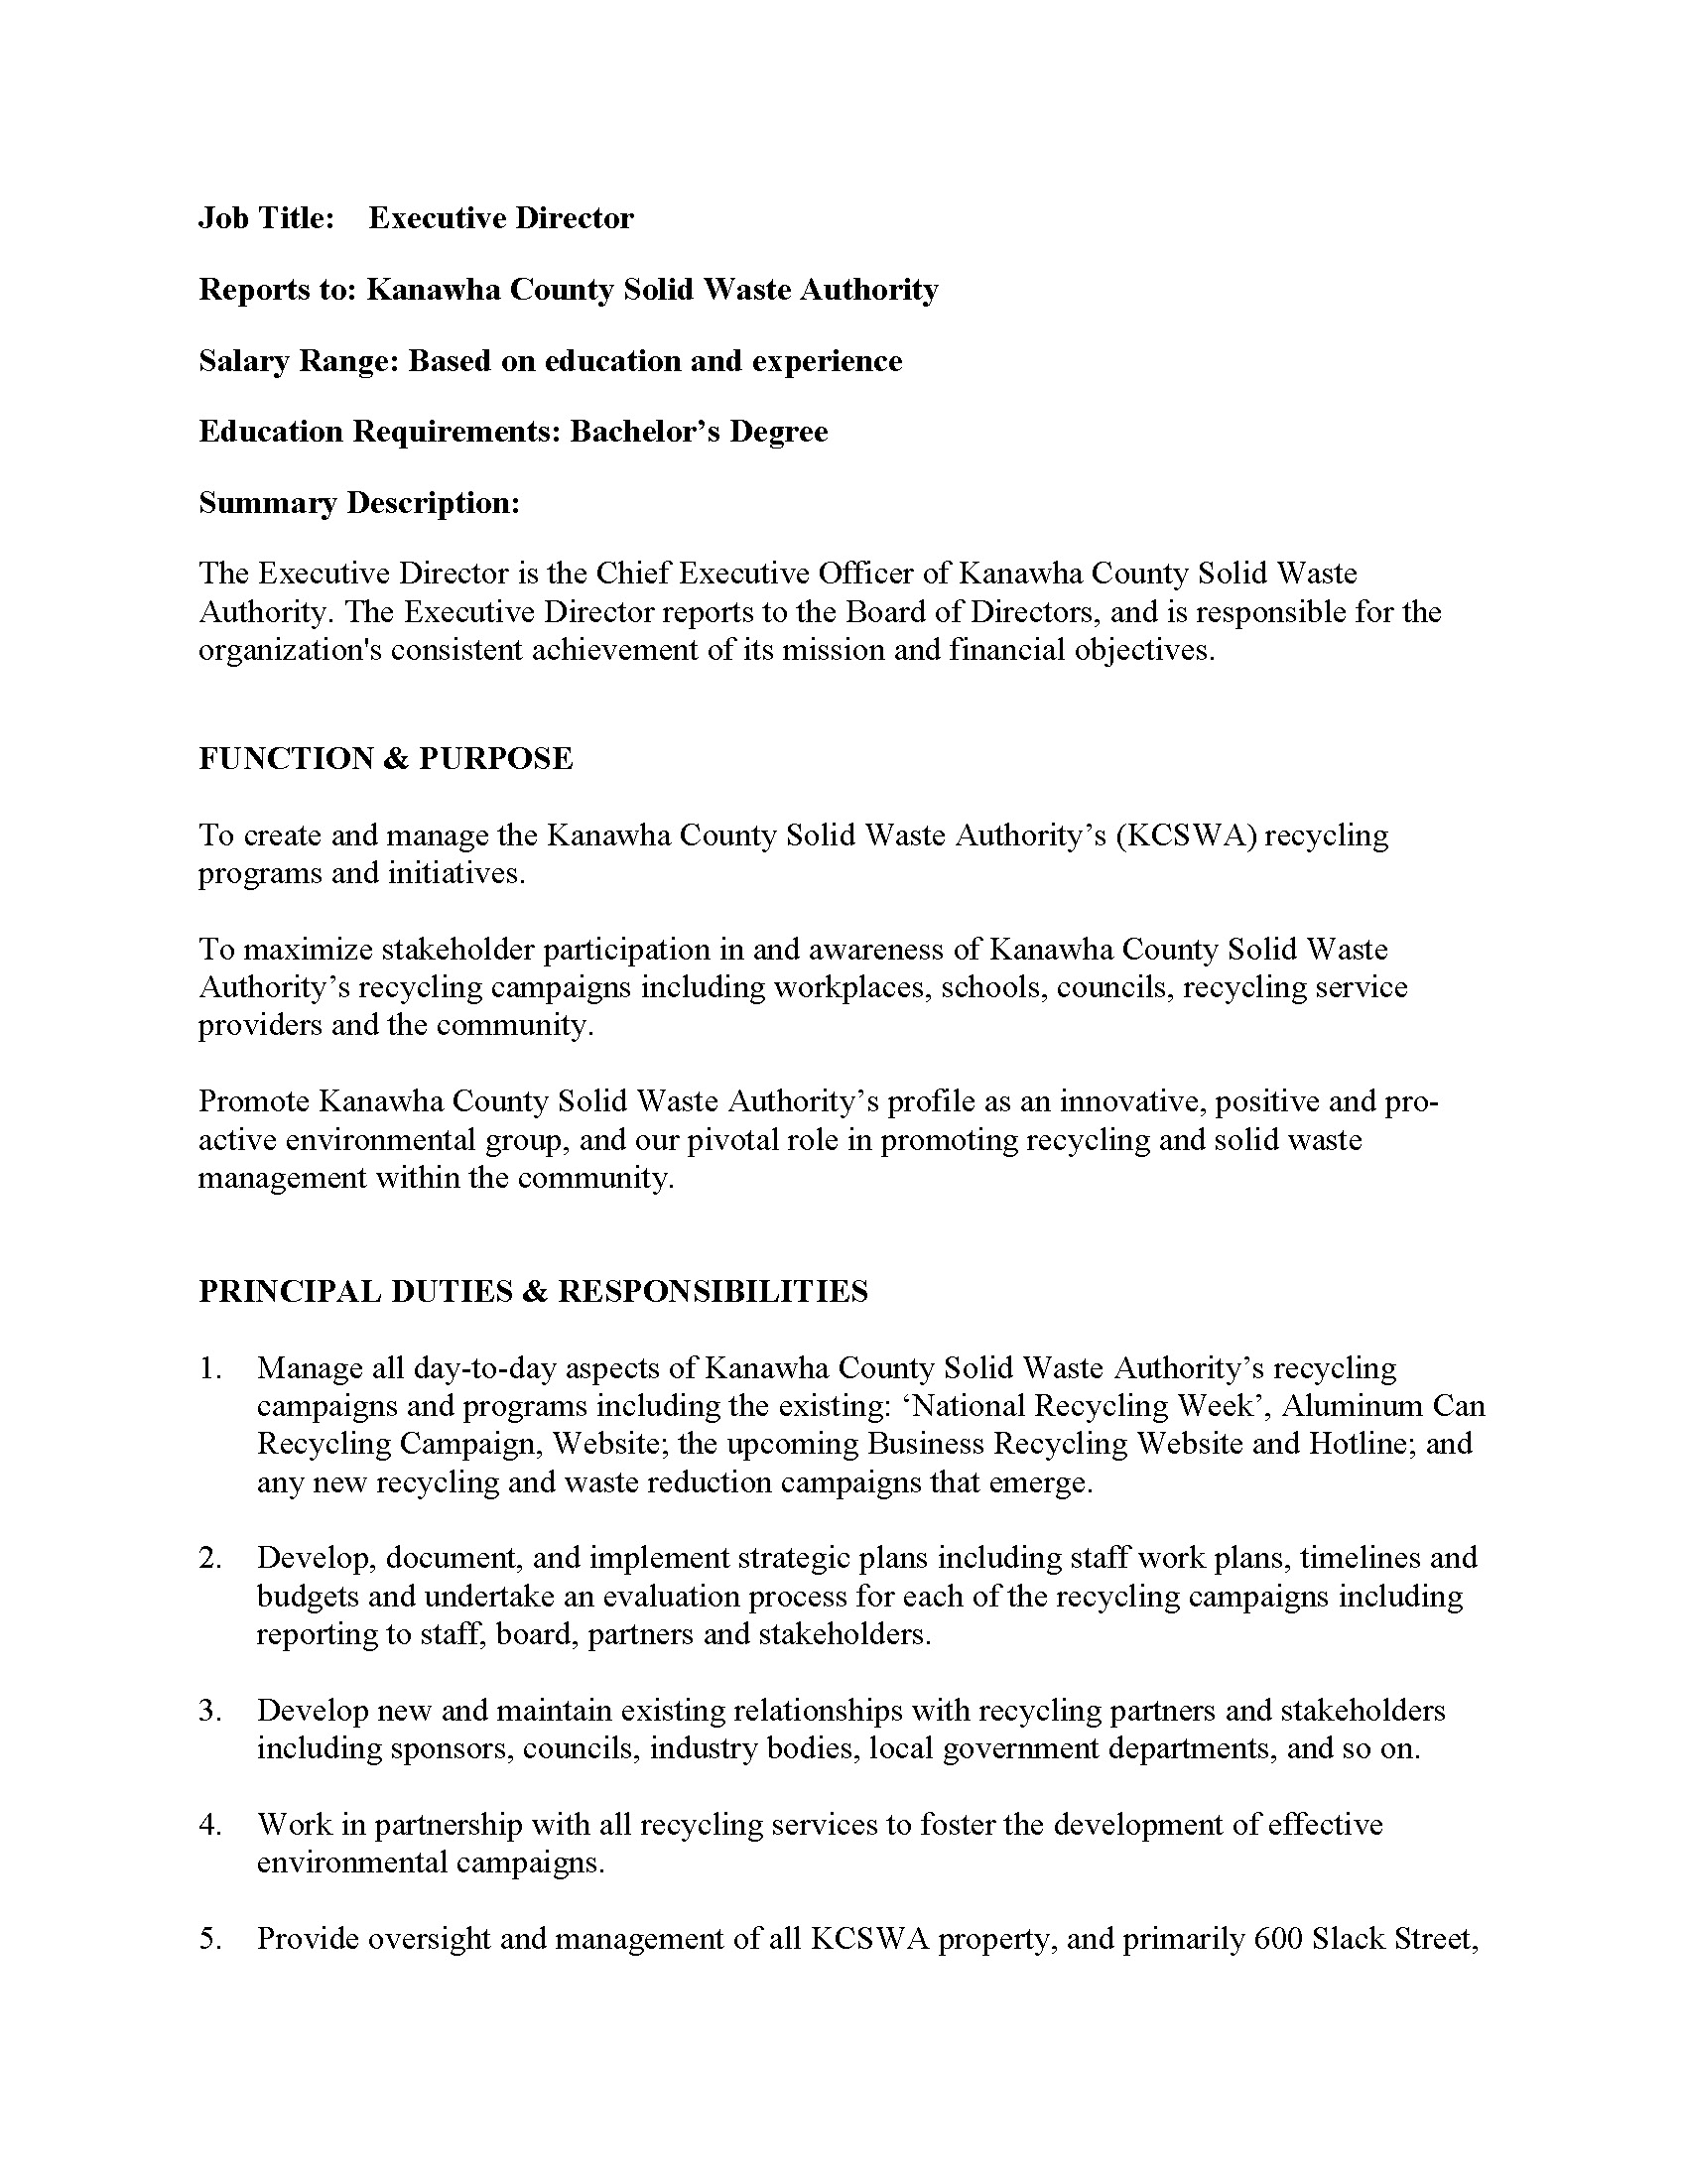 ExecutiveDirectorJobDescription docPage1 – Executive Director Job Description